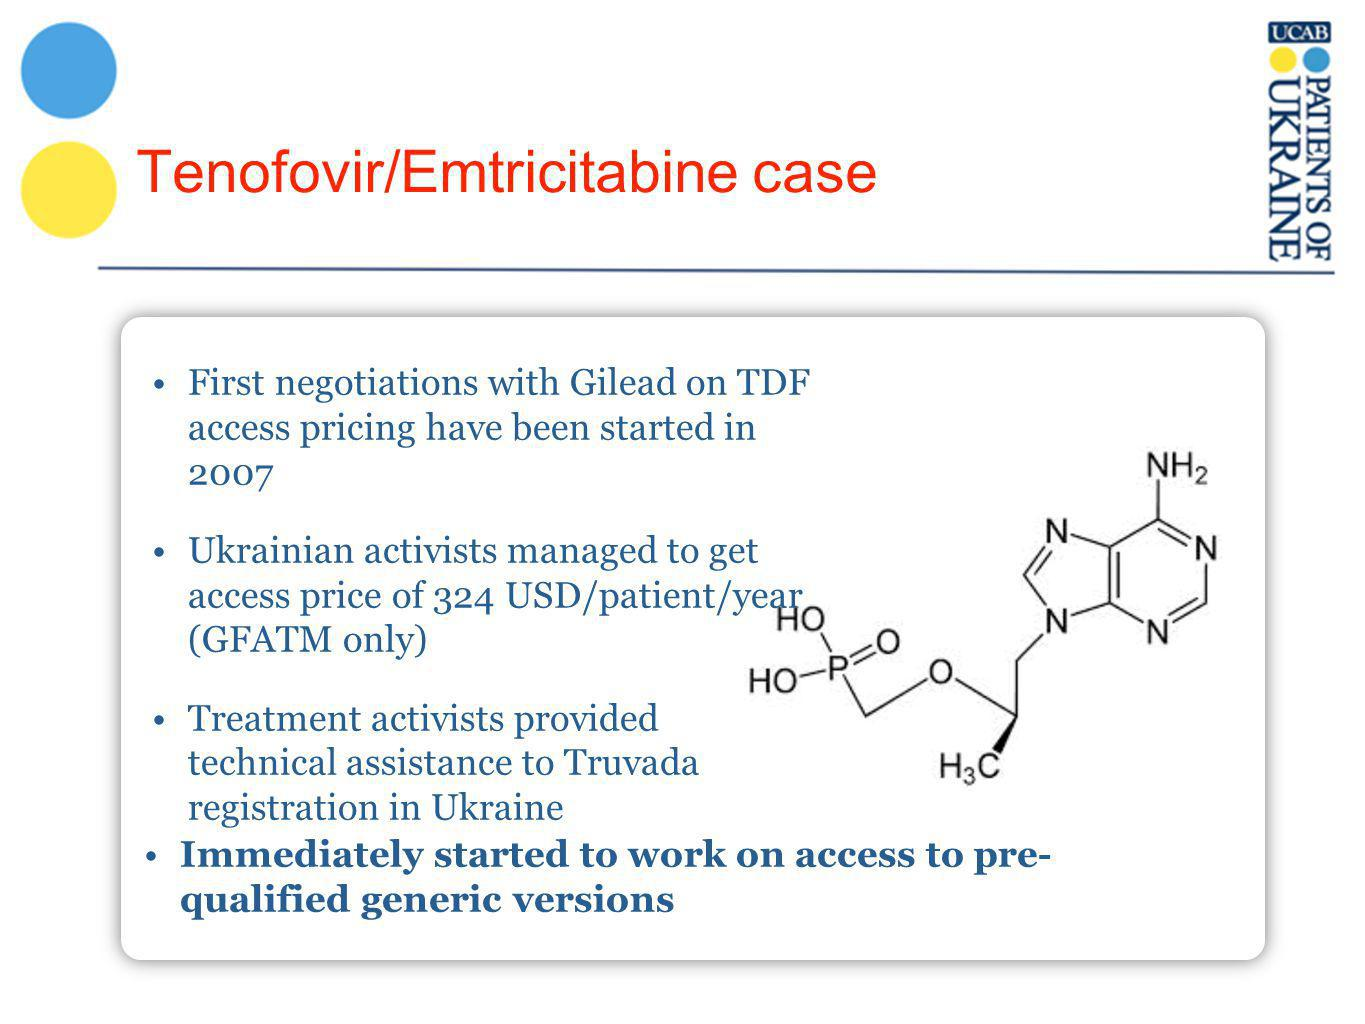 Tenofovir/Emtricitabine case Immediately started to work on access to pre- qualified generic versions First negotiations with Gilead on TDF access pricing have been started in 2007 Ukrainian activists managed to get access price of 324 USD/patient/year (GFATM only) Treatment activists provided technical assistance to Truvada registration in Ukraine